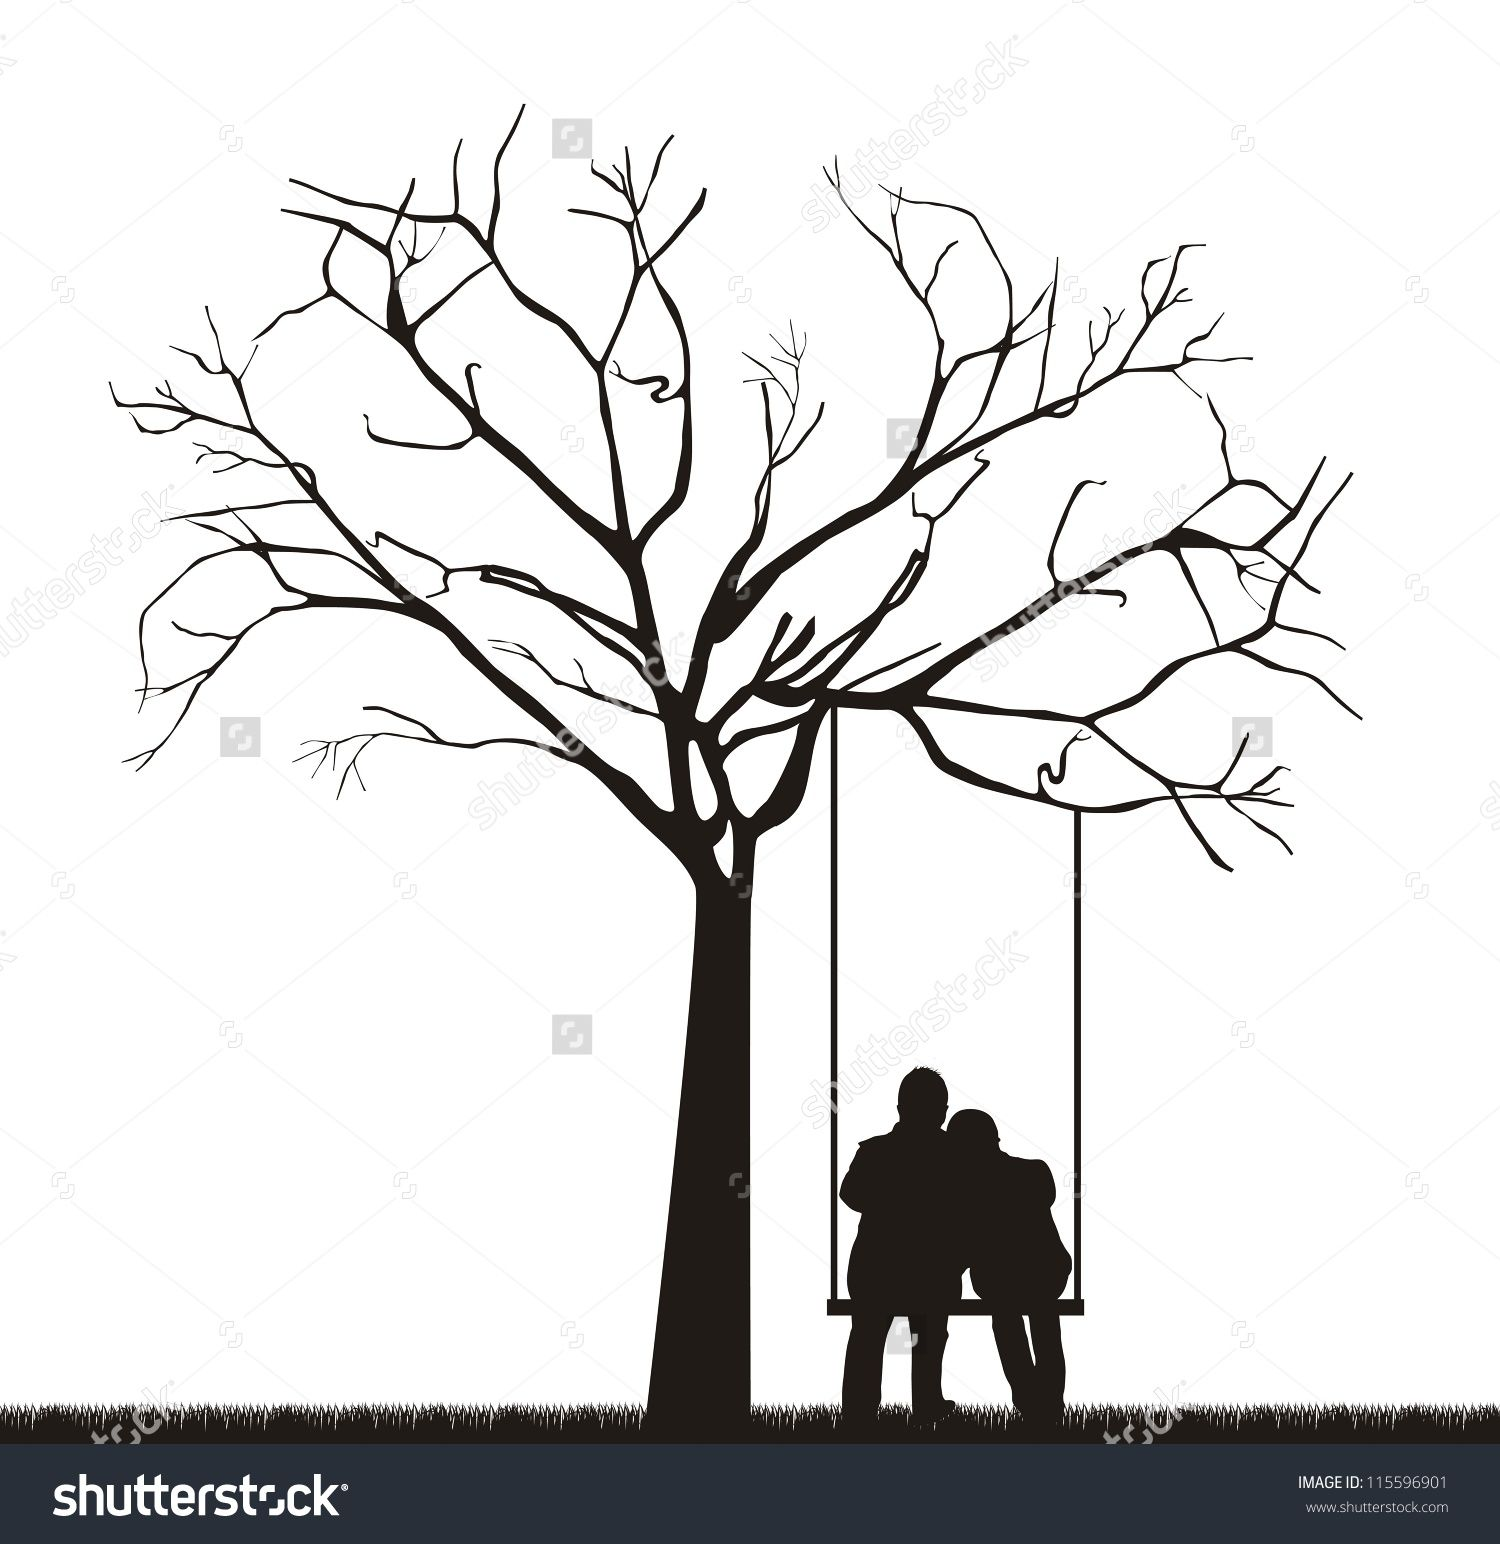 swing chair drawing cheap covers for weddings couple under a tree google search